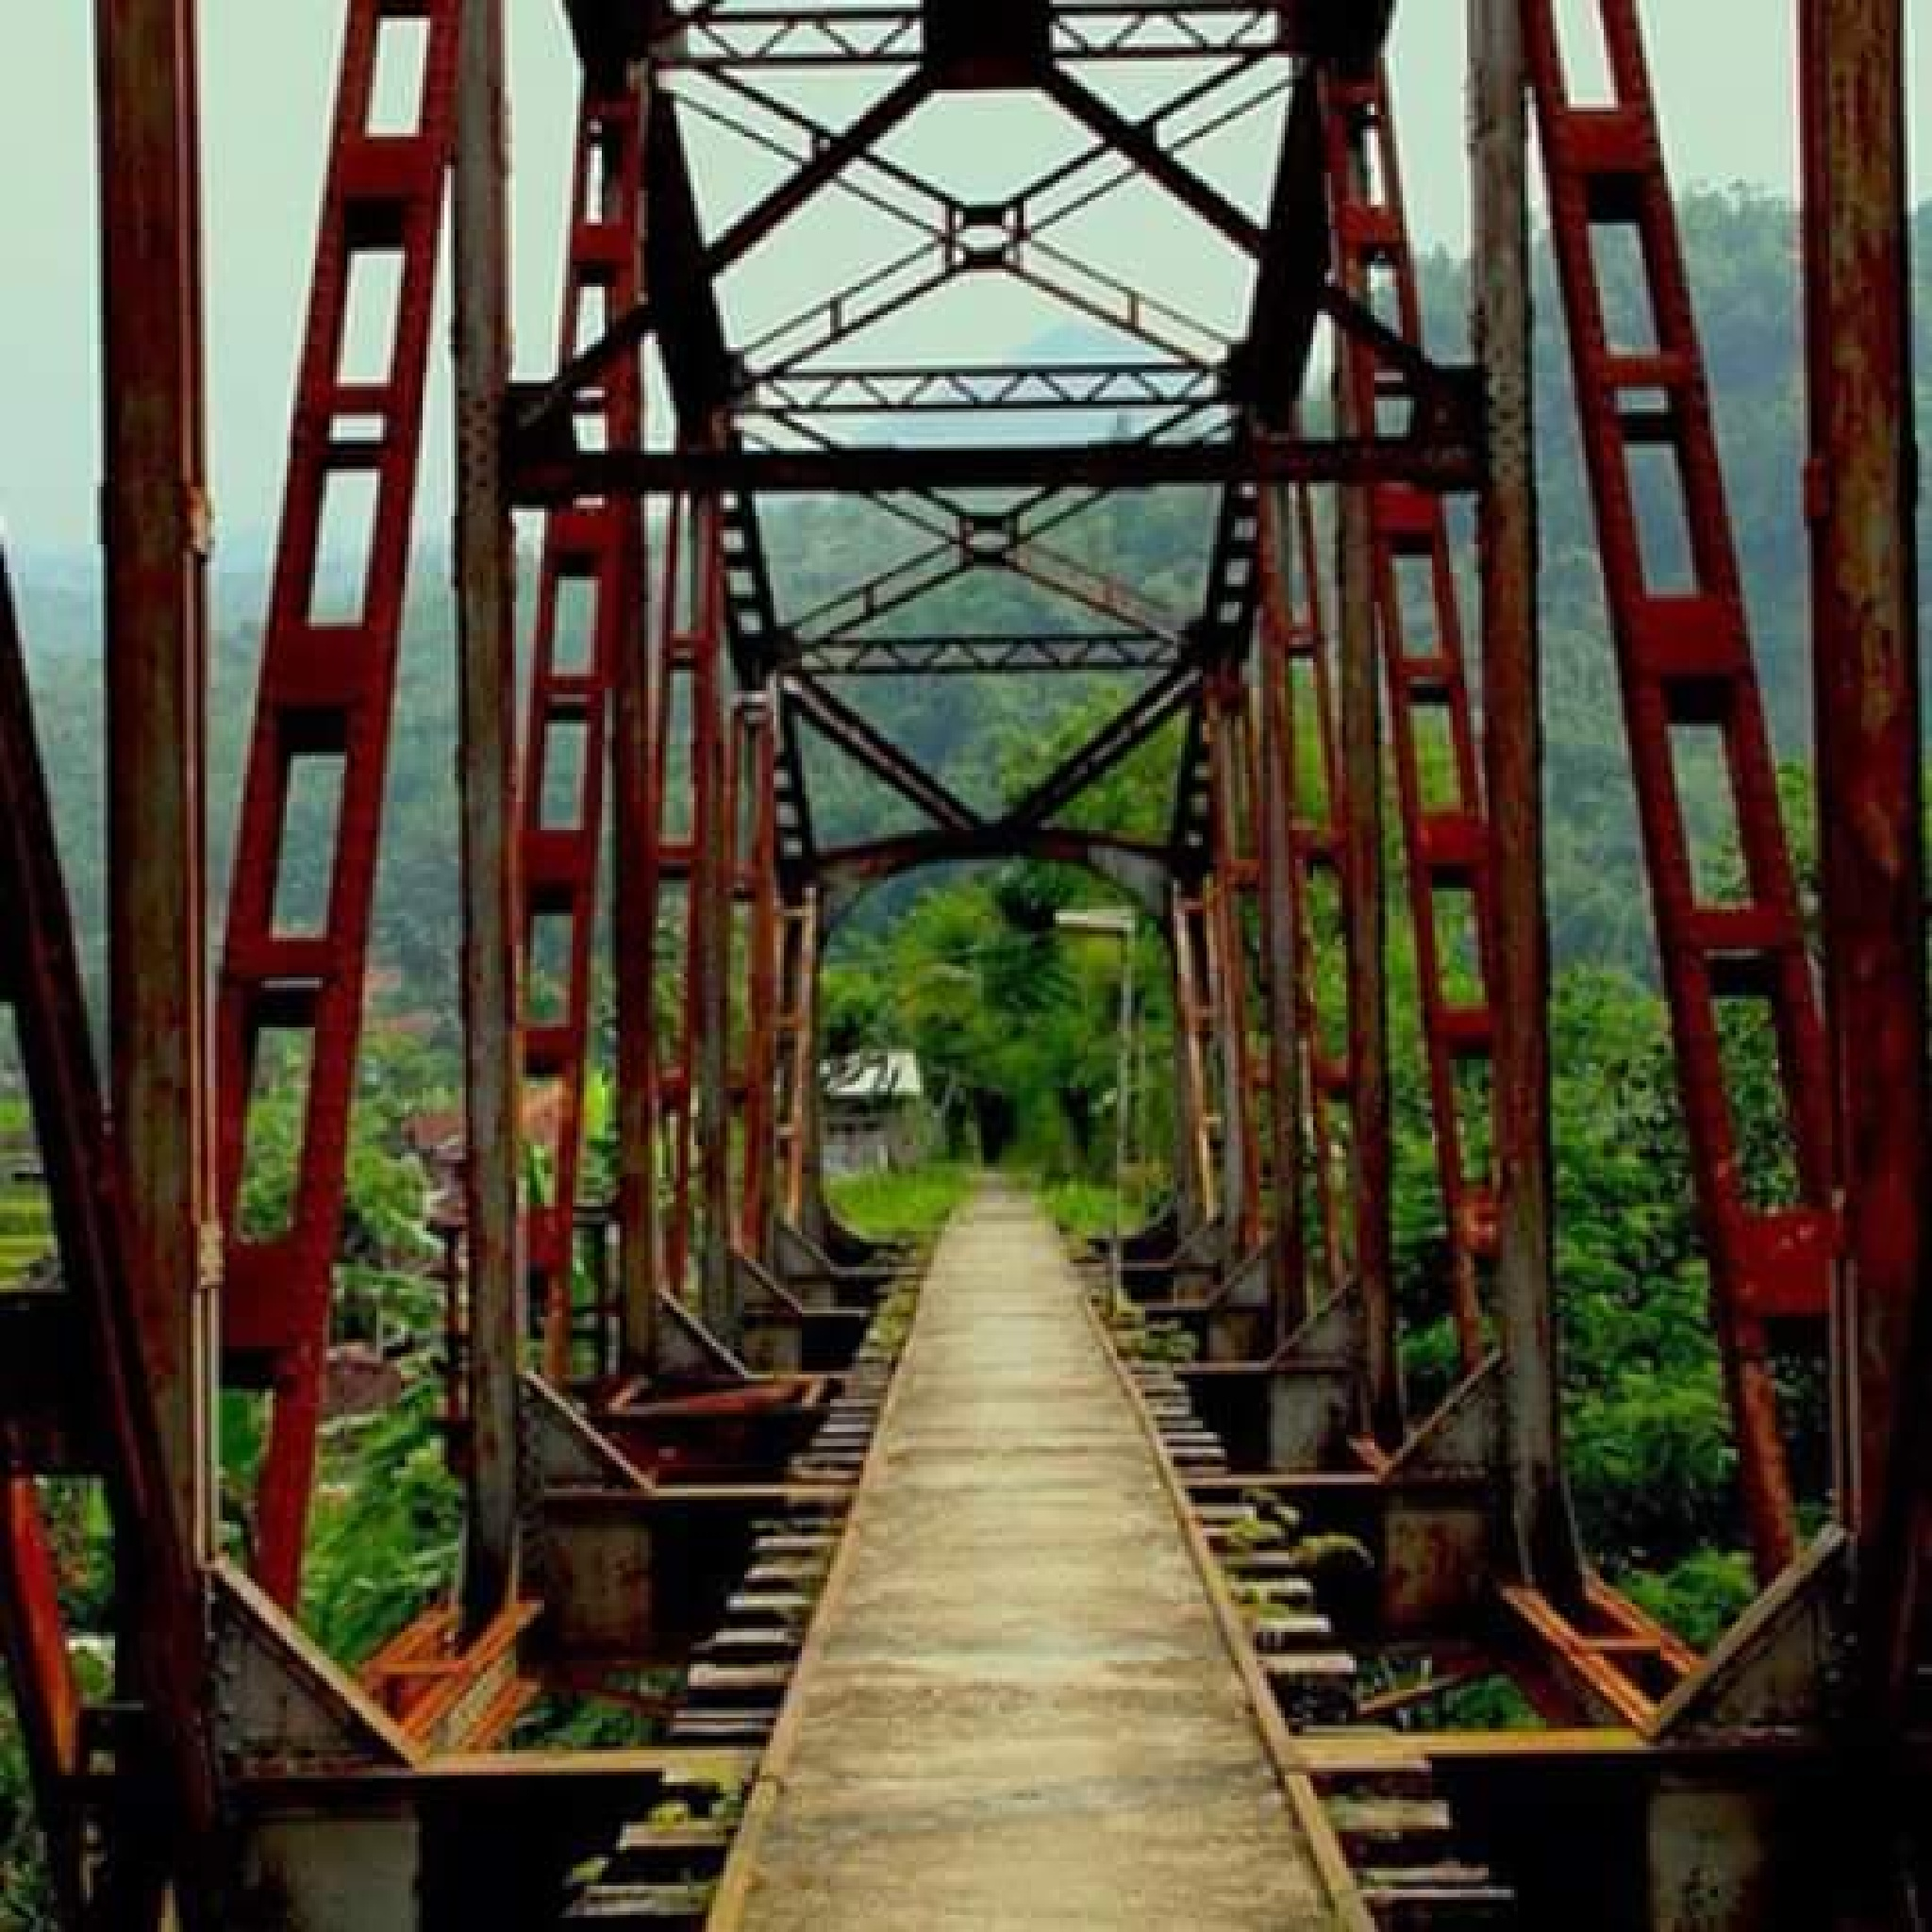 it's the way now by Ali Syarief